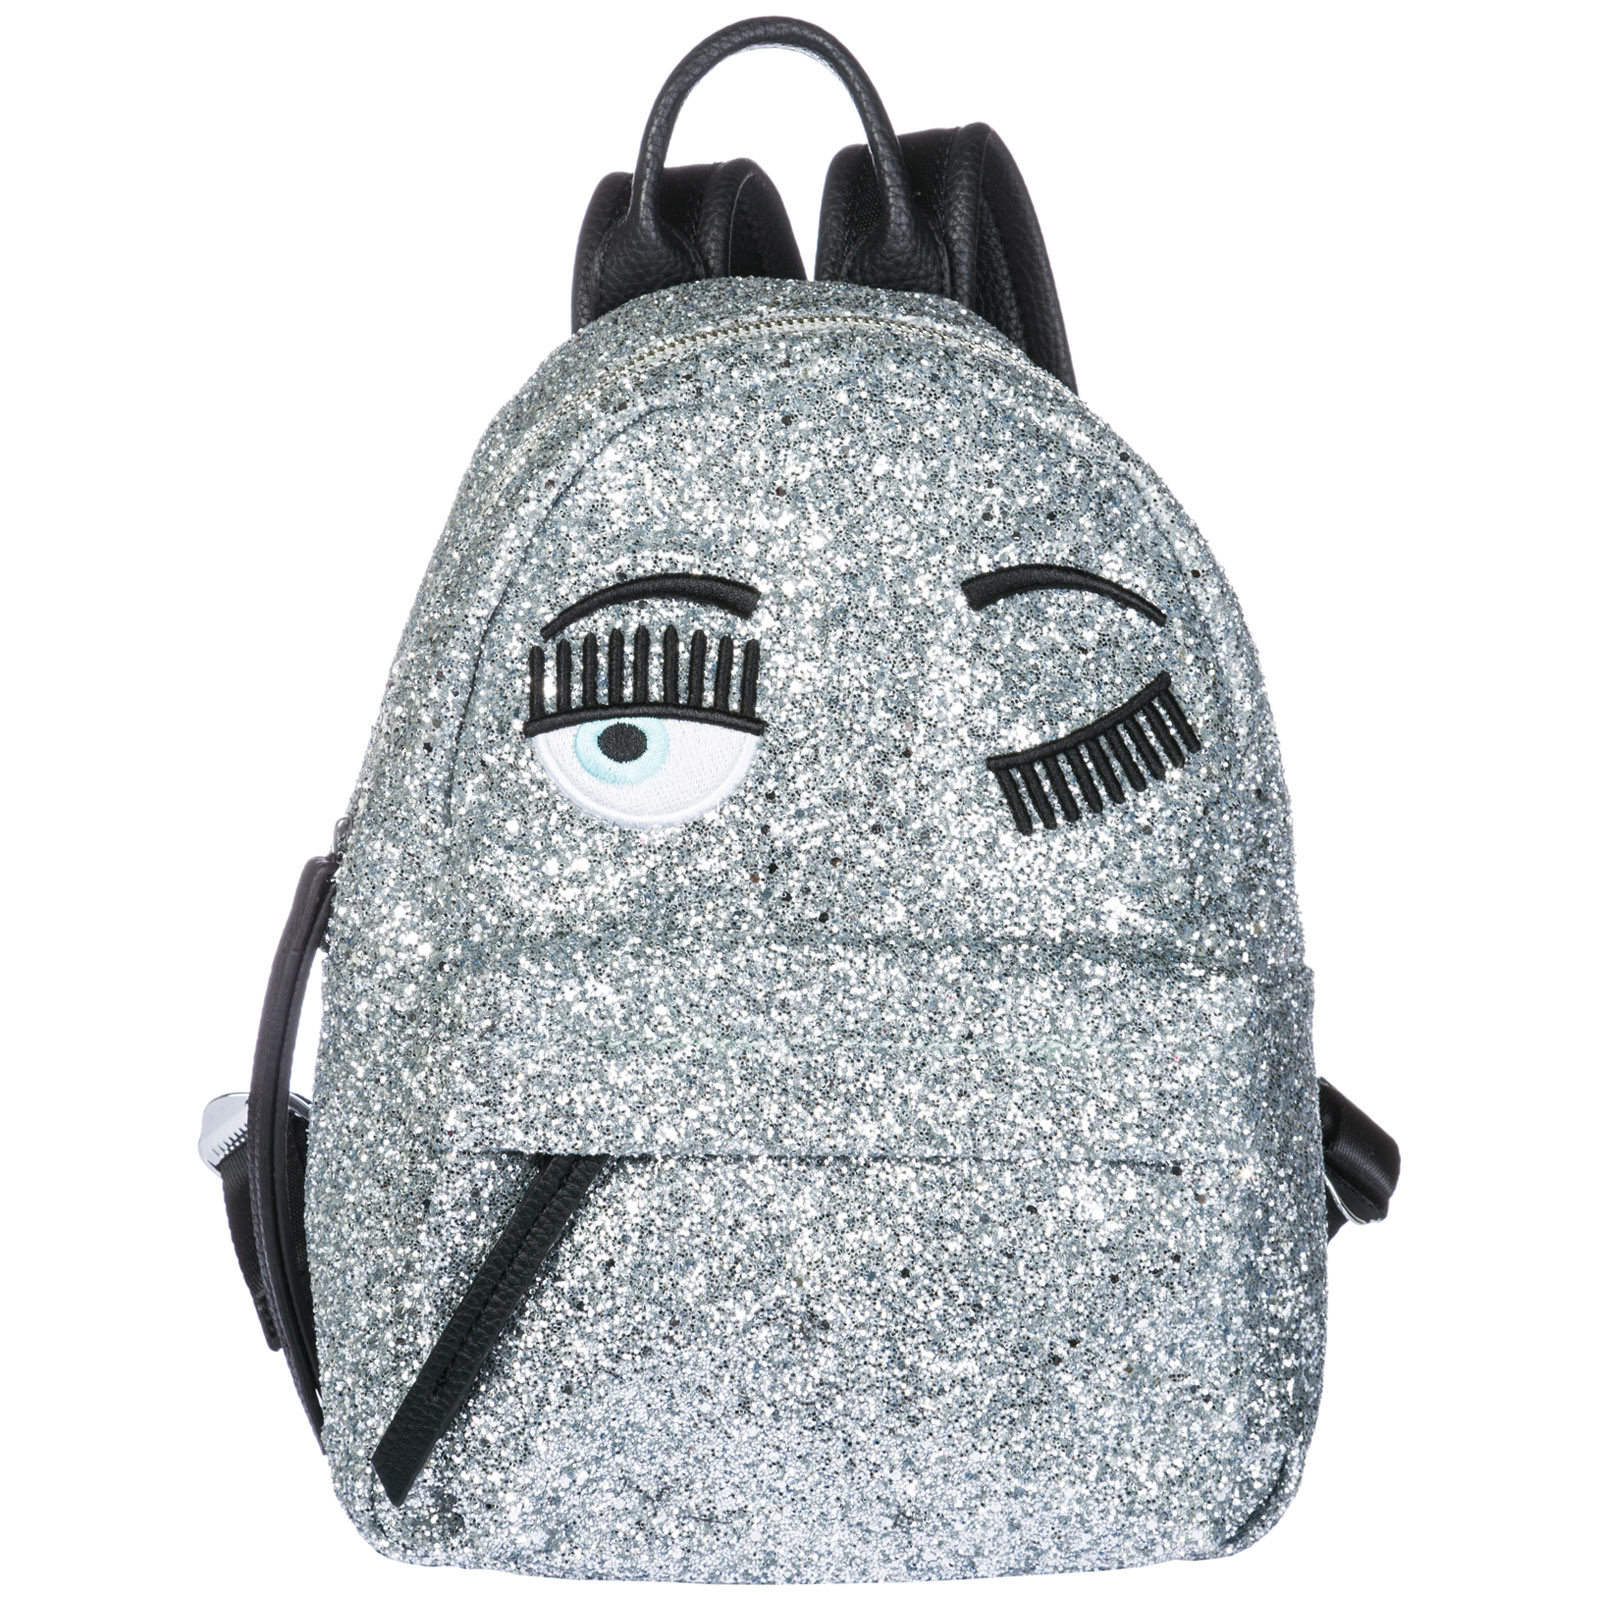 Flirting Small Silver Glitter And Black Faux Leather Backpack in Metallic